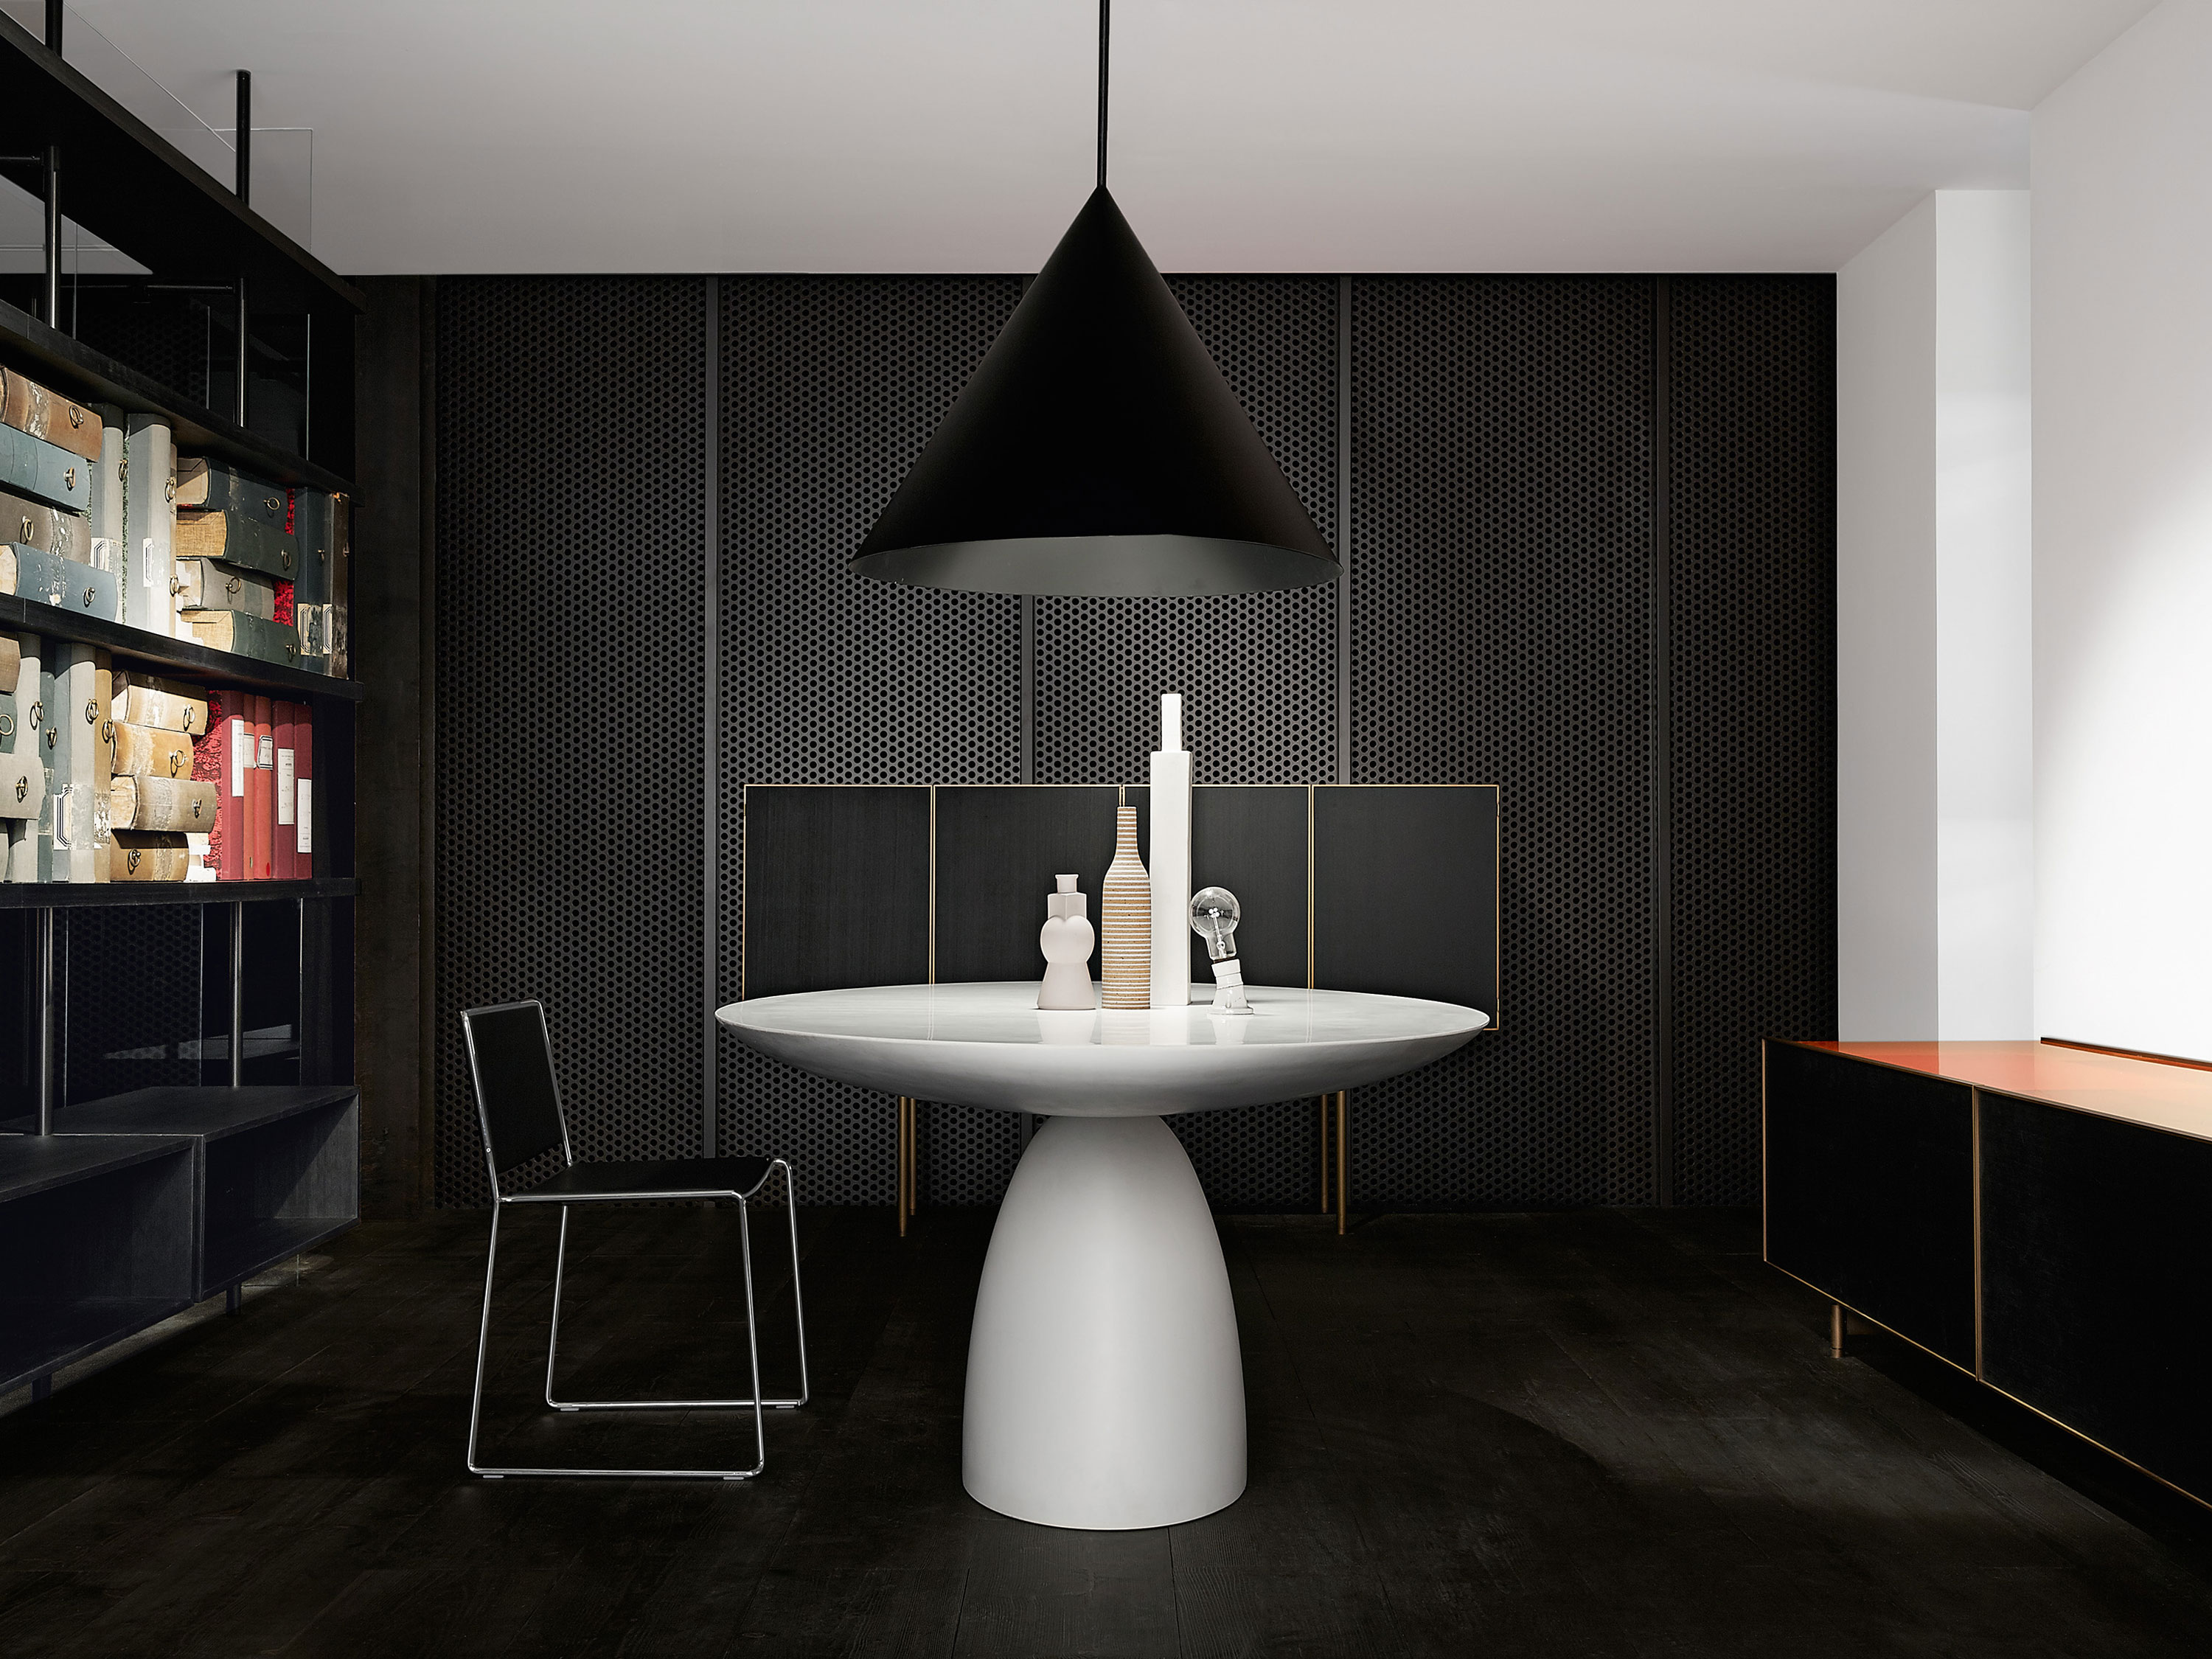 Porro, image:prodotti - Porro Spa - Ellipse Table